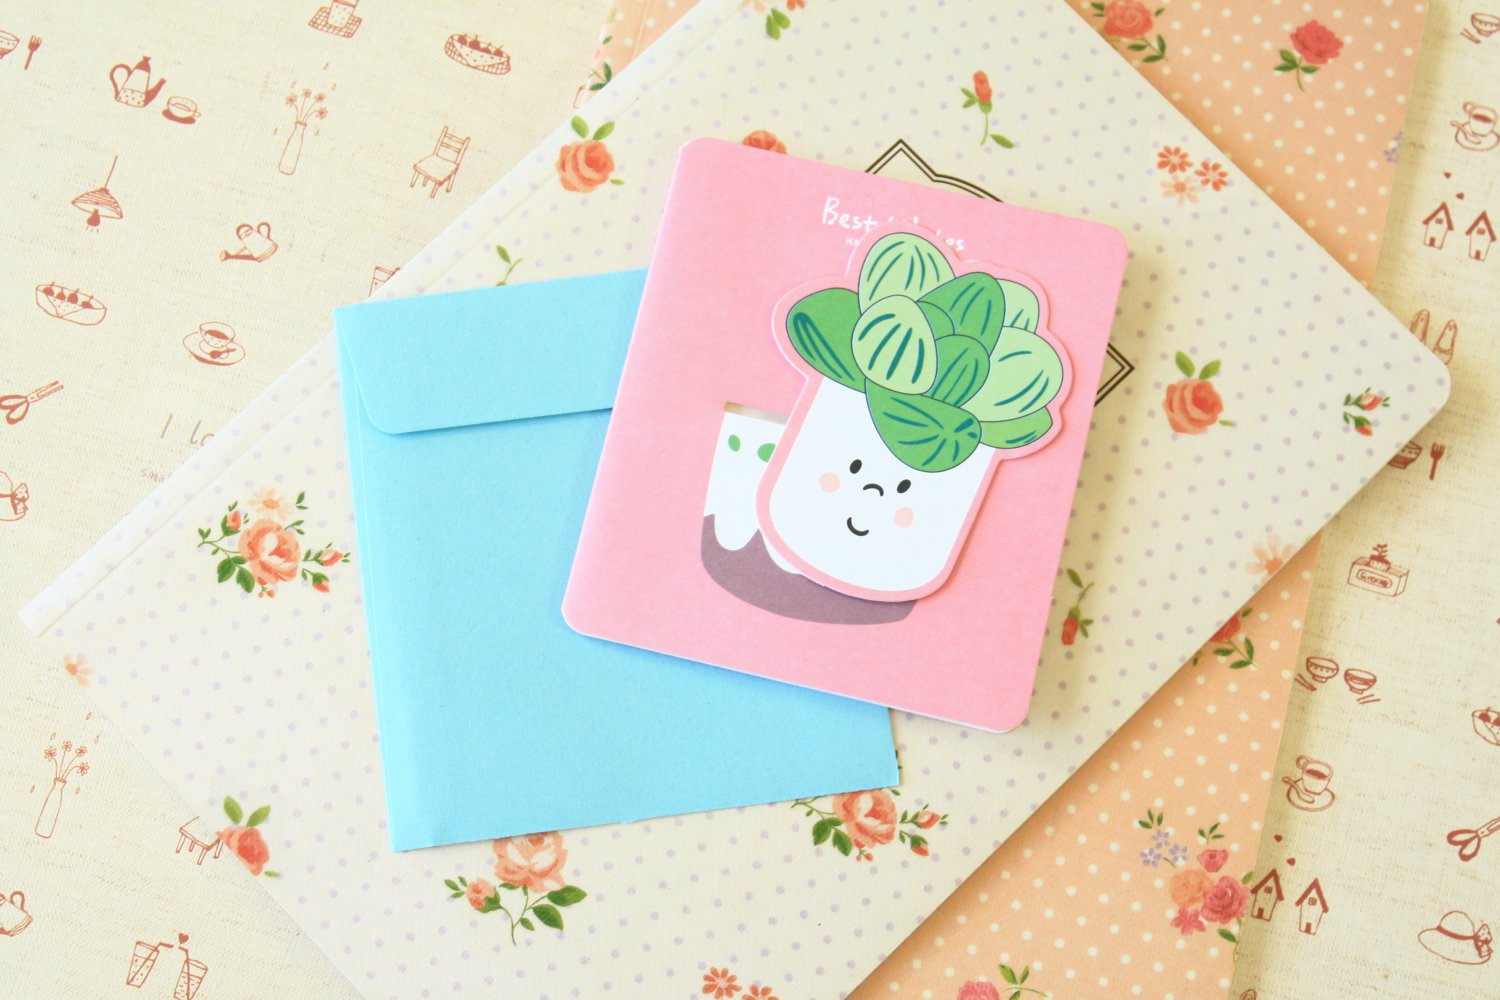 07 Succulents Bookmark & cartoon greeting card